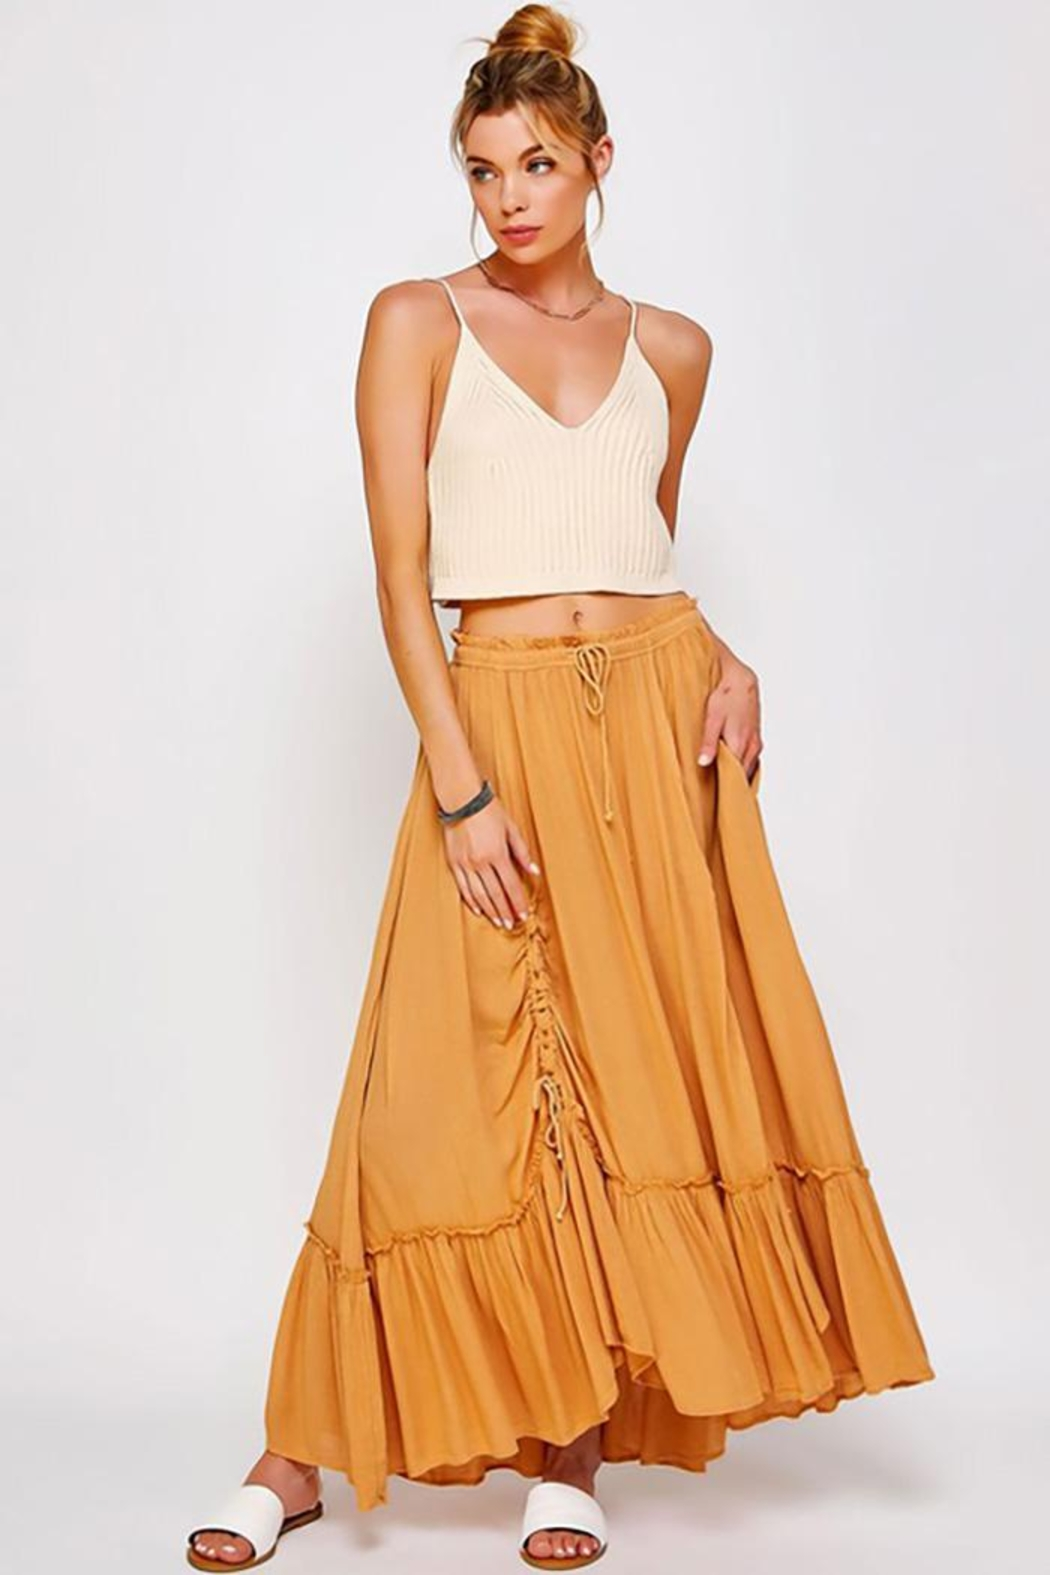 Sweet Generis Ruched Cinched And Pleated Convertible Skirt Dress - Main Image